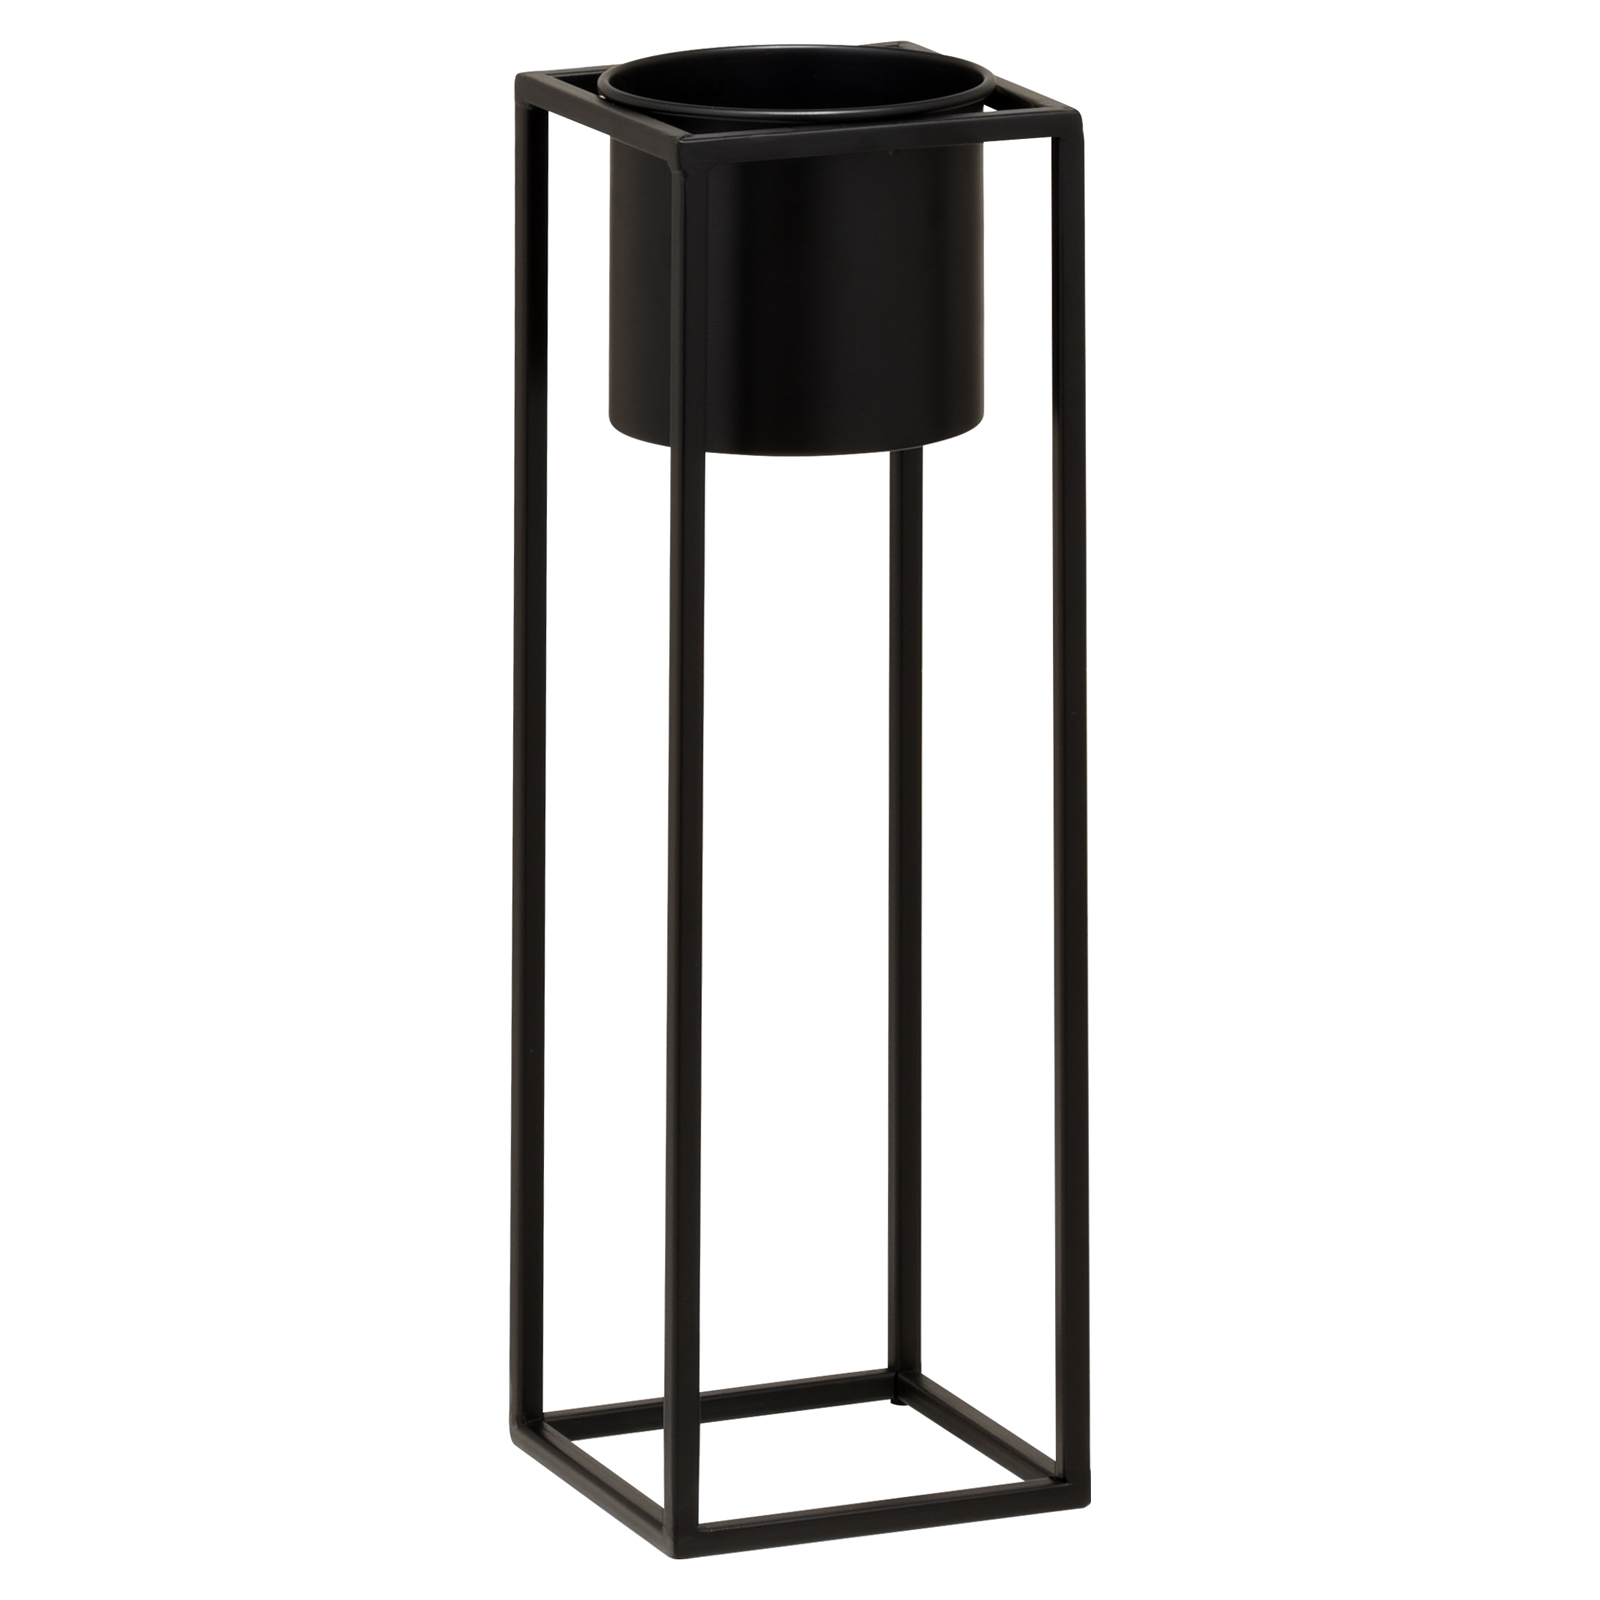 Hartleys-Small-Round-Freestanding-Black-Metal-Plant-Pot-Tall-Square-Floor-Stand thumbnail 13